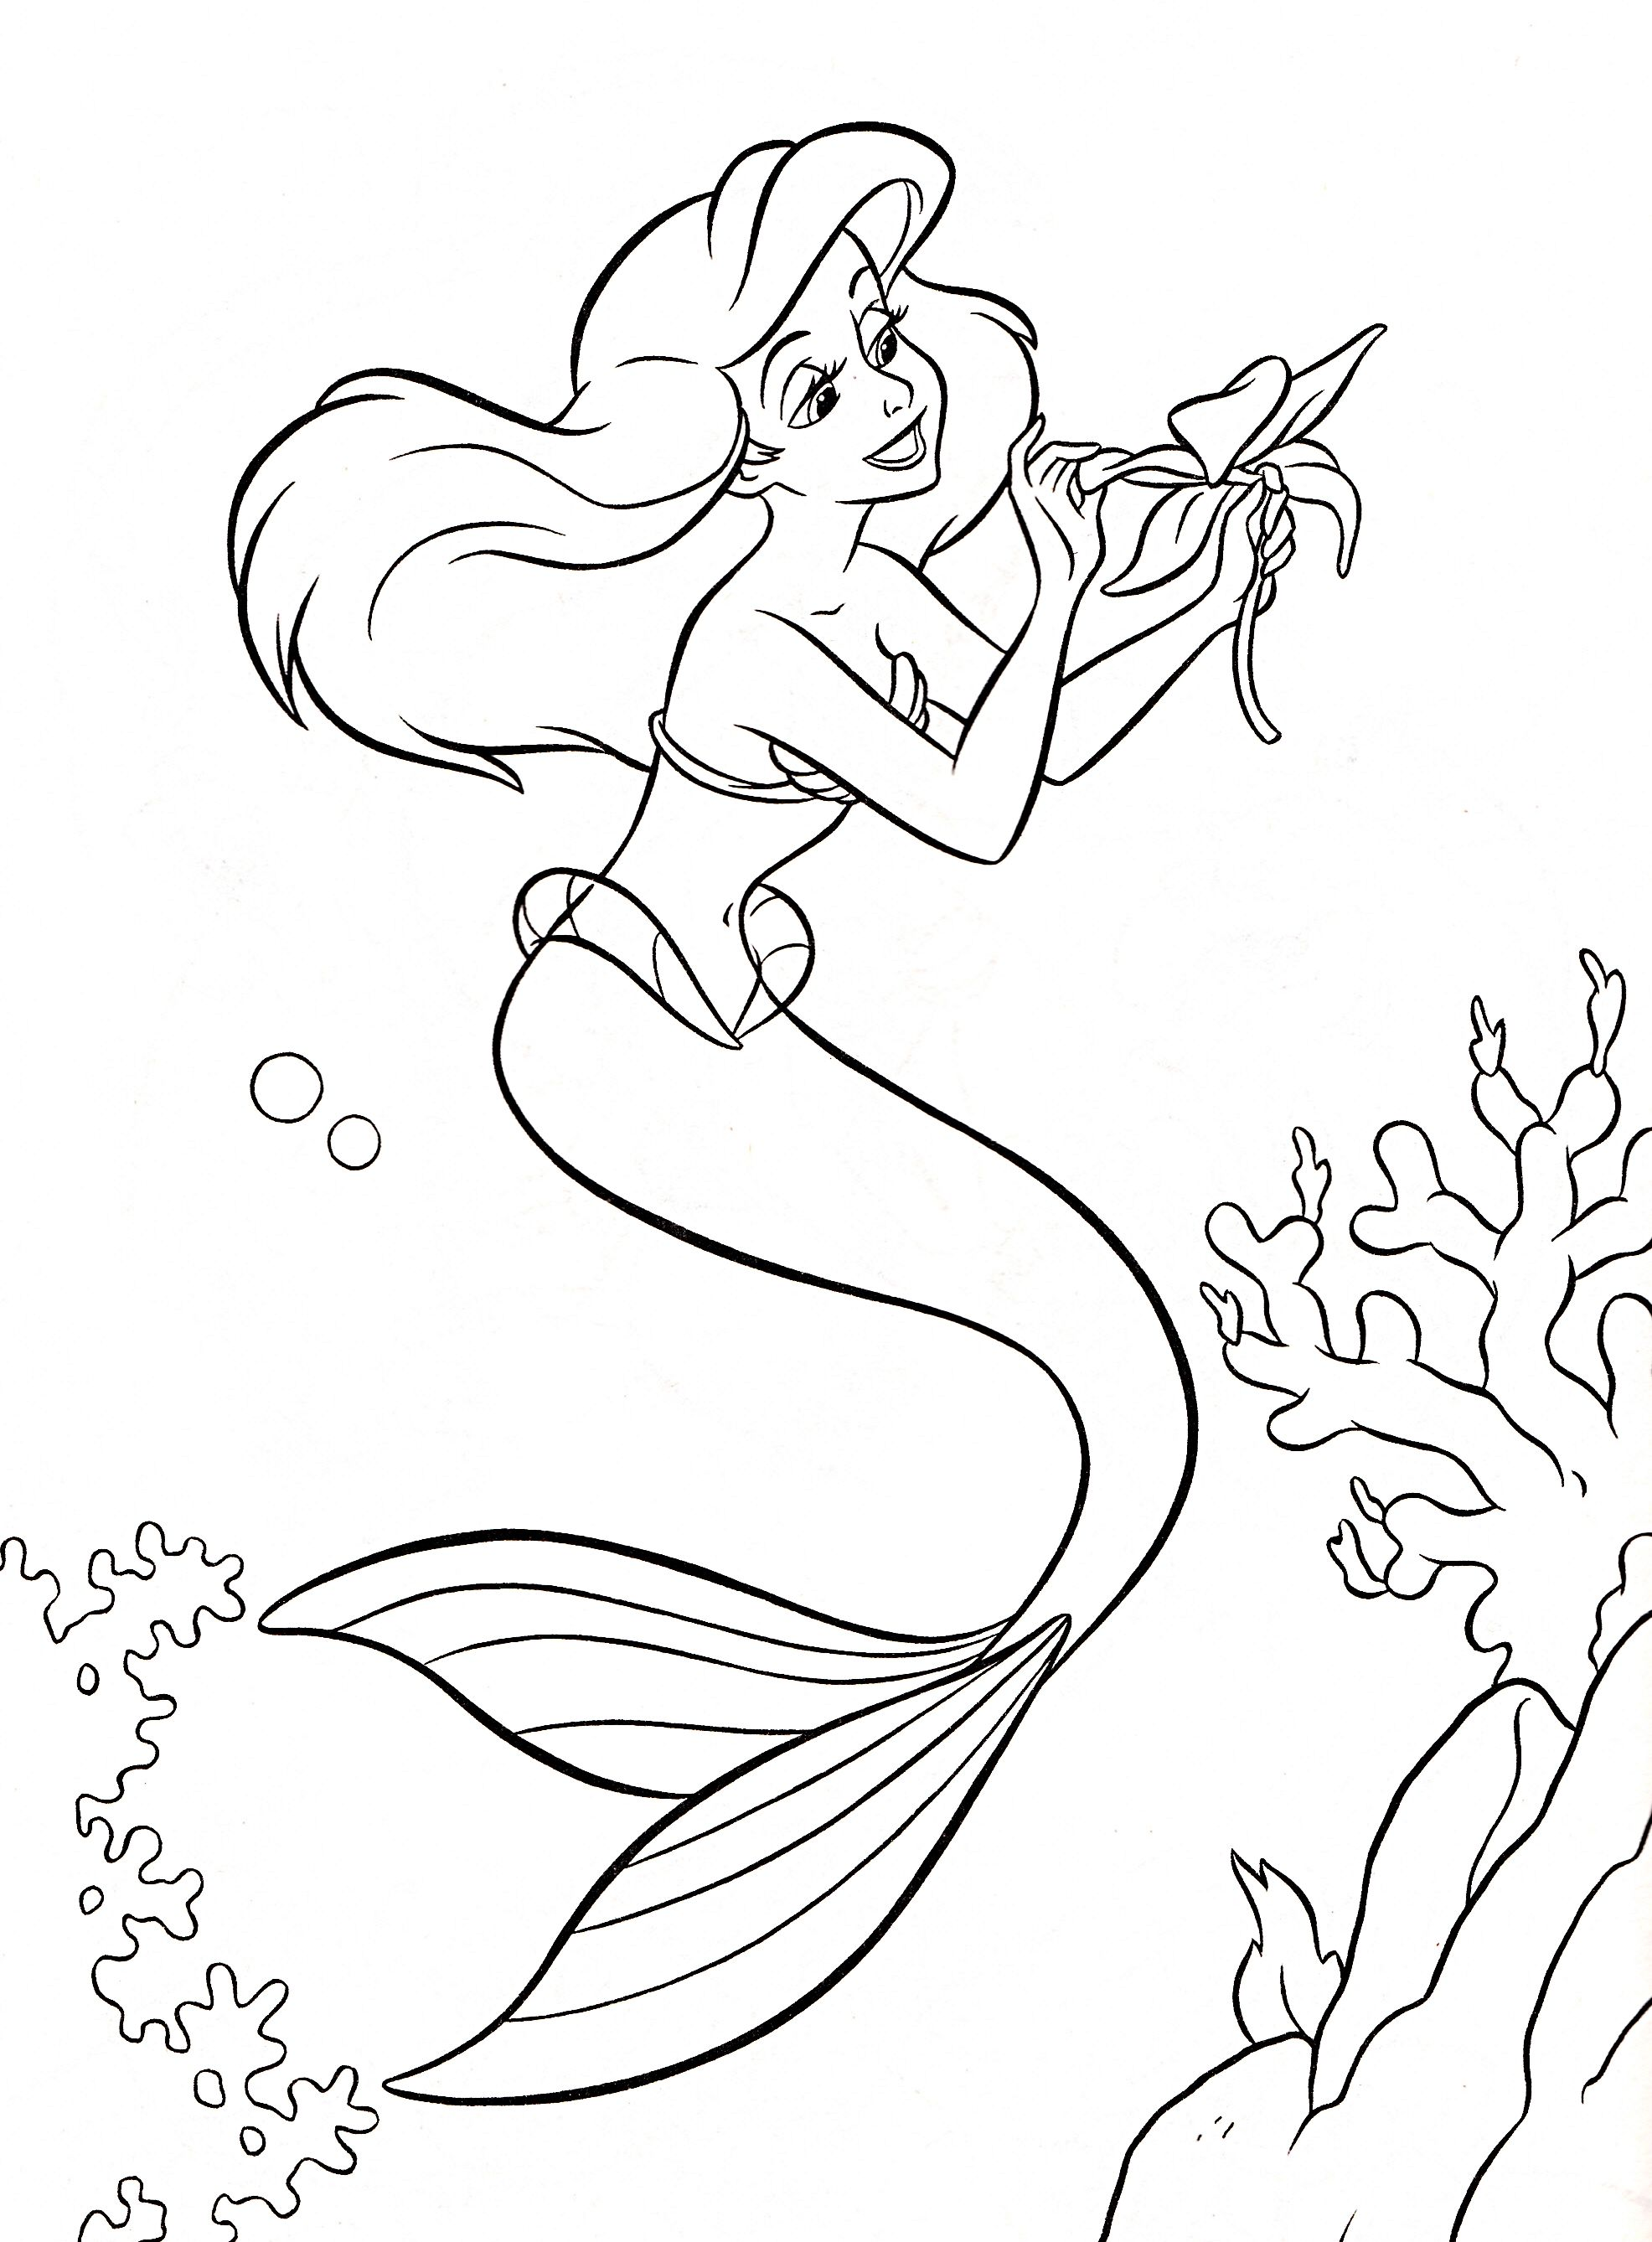 disney tangled coloring pages printable | Walt Disney Characters Walt Disney  Colori… (With images) | Disney princess coloring pages, Princess coloring  pages, Ariel coloring pages